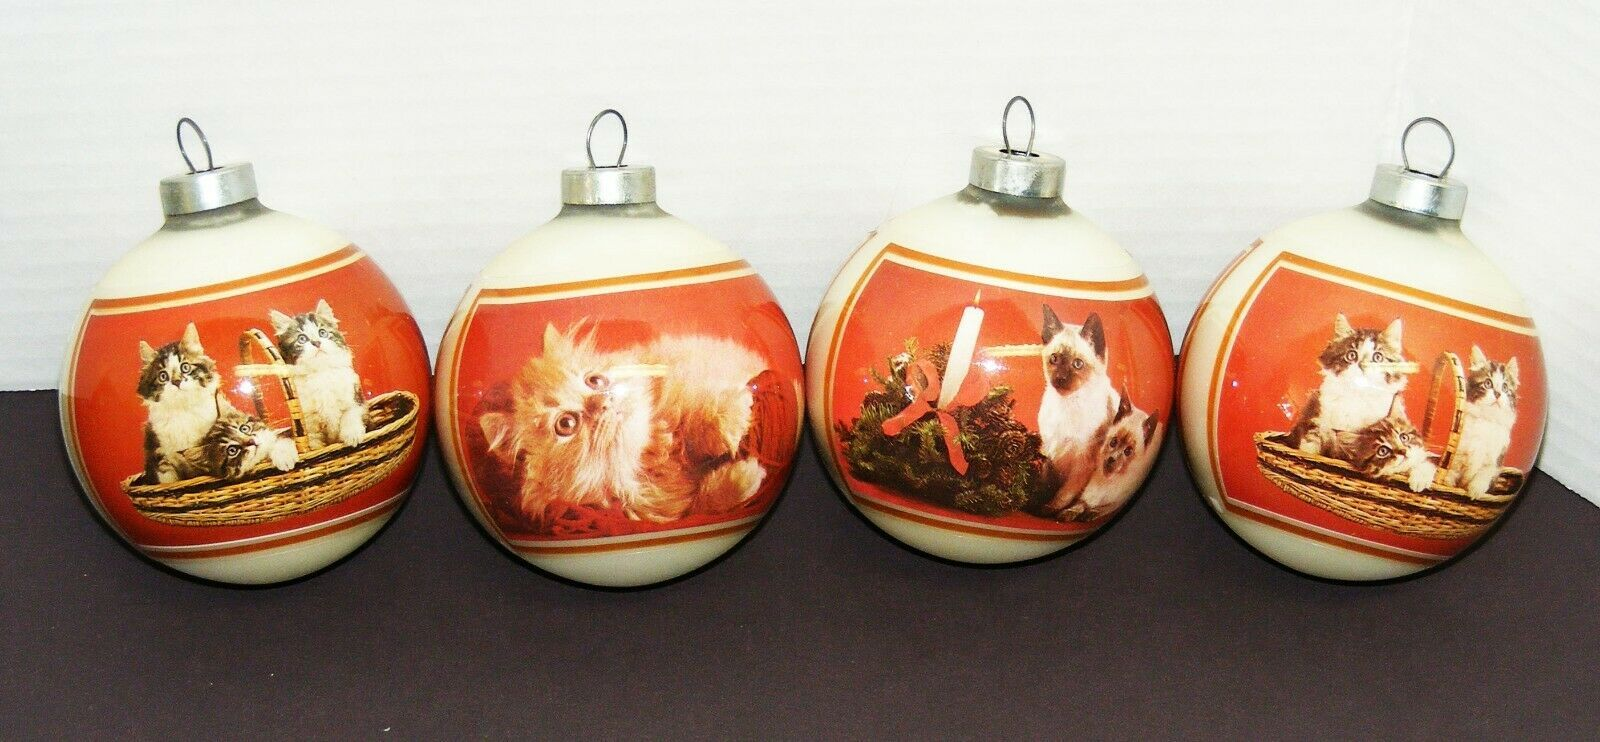 Primary image for CATS - 4 Corning Glass Christmas Ornaments Featuring Kittens/Cats